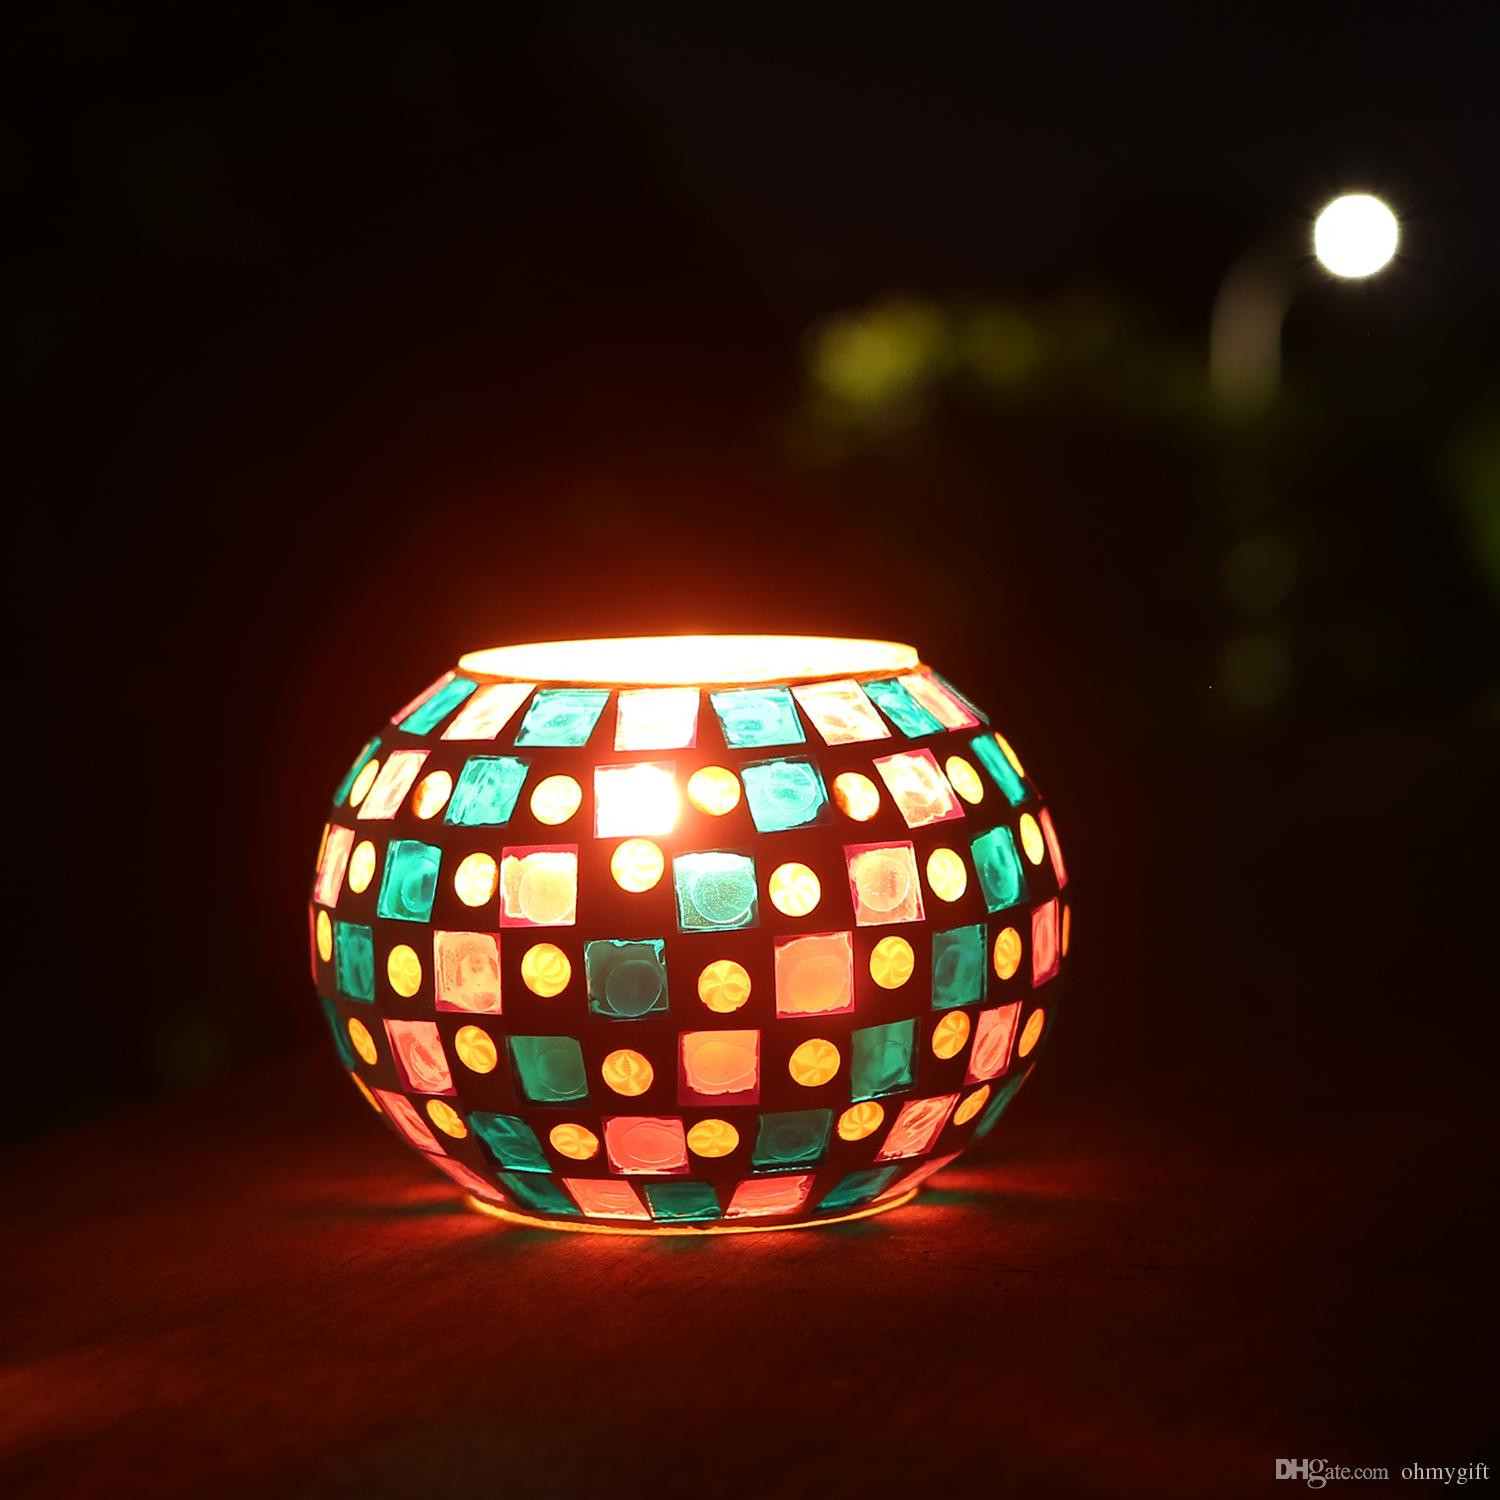 glass vase with hole for lights of 2018 magicnight color changing mosaic solar table light glass bowl intended for 2018 magicnight color changing mosaic solar table light glass bowl small disco globe ball night lamp for garden patio porch from ohmygift 18 79 dhgate